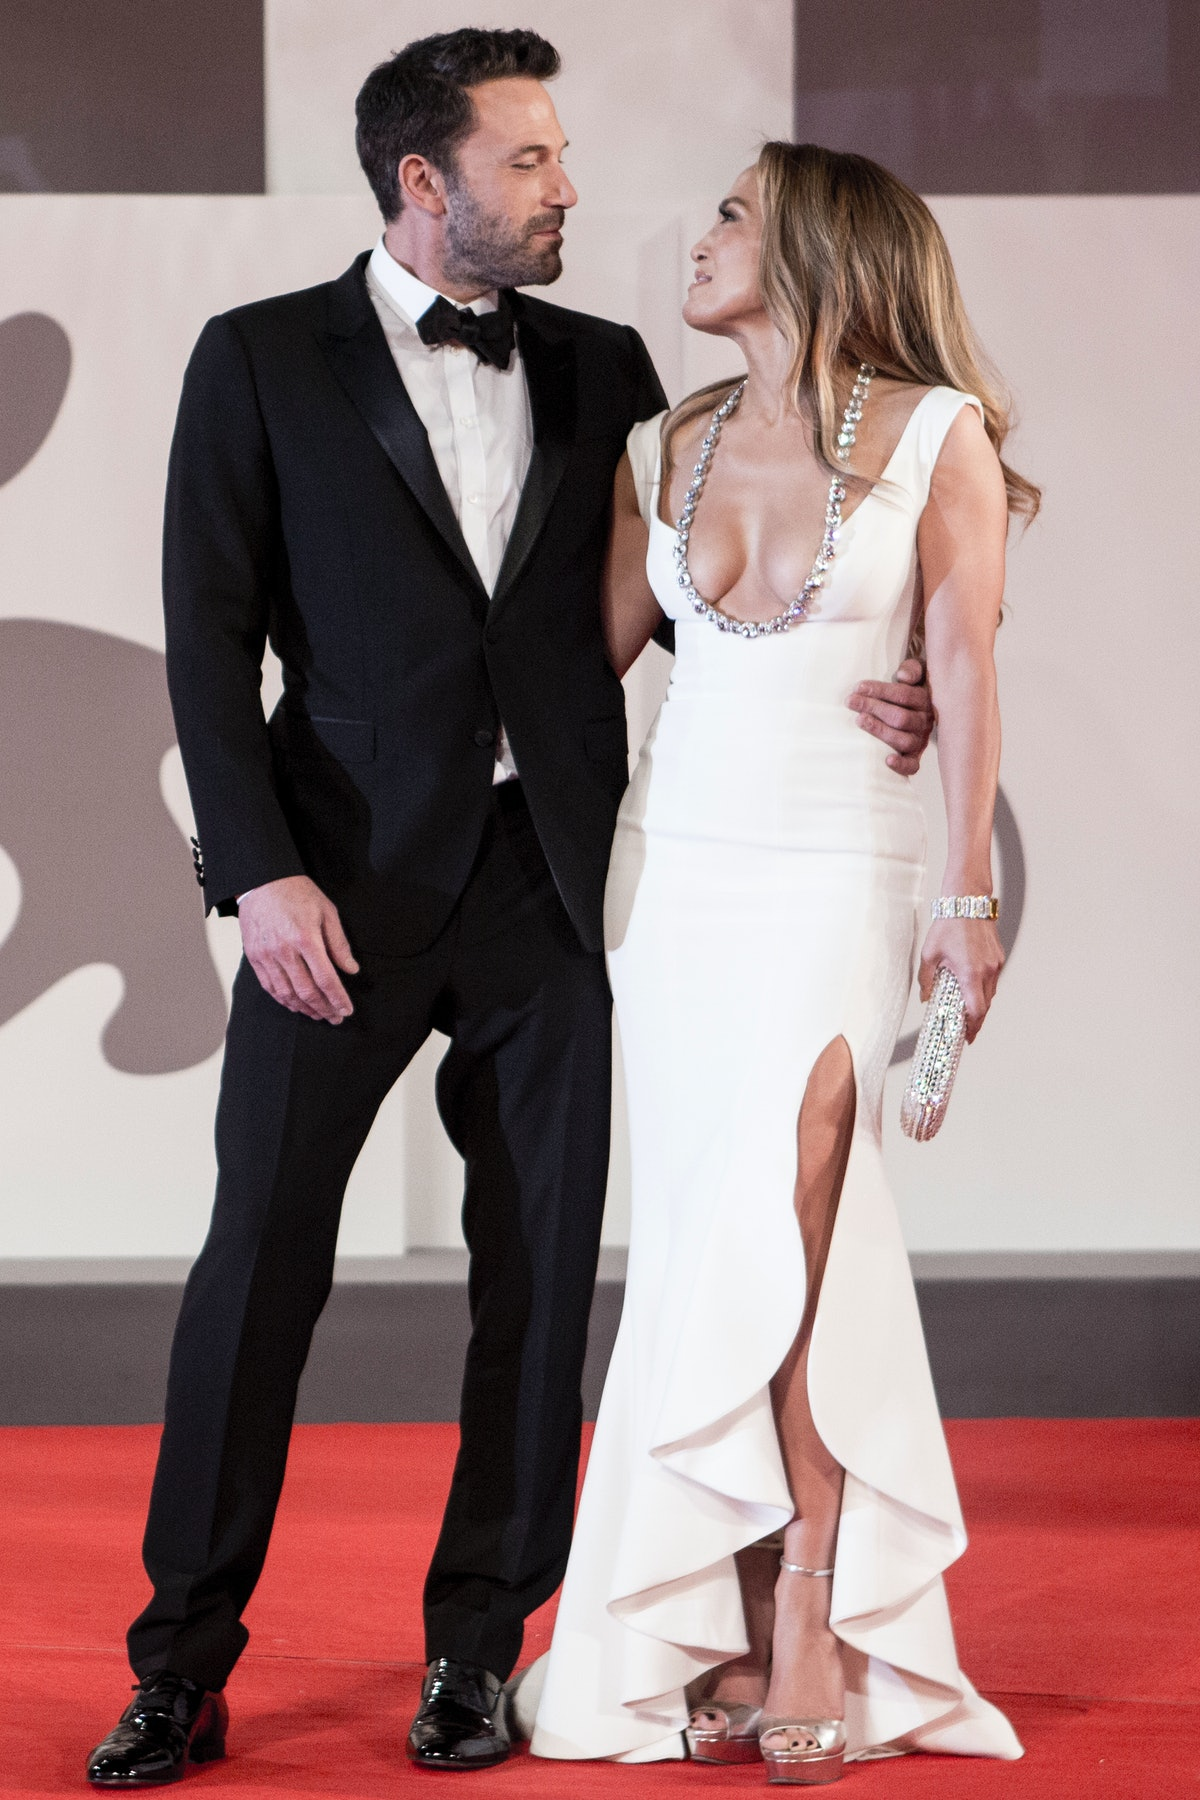 These photos of Ben Affleck and J-Lo making their 2021 red carpet debut are incredible.